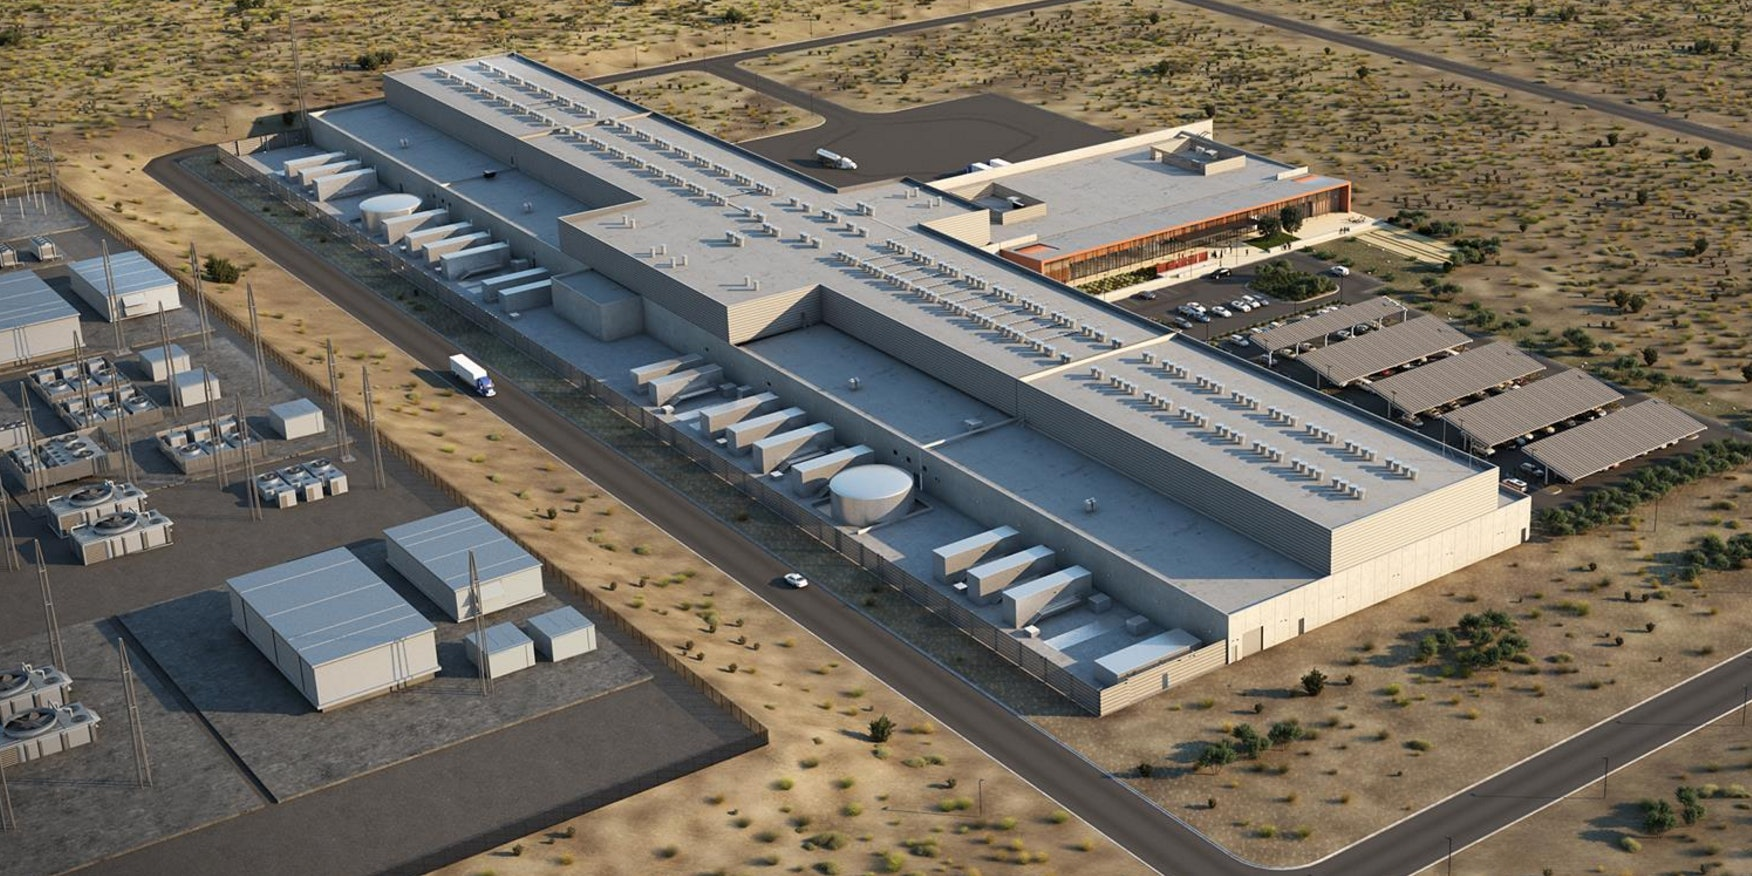 Facebook is building a massive new data center in Los Lunas, New Mexico.